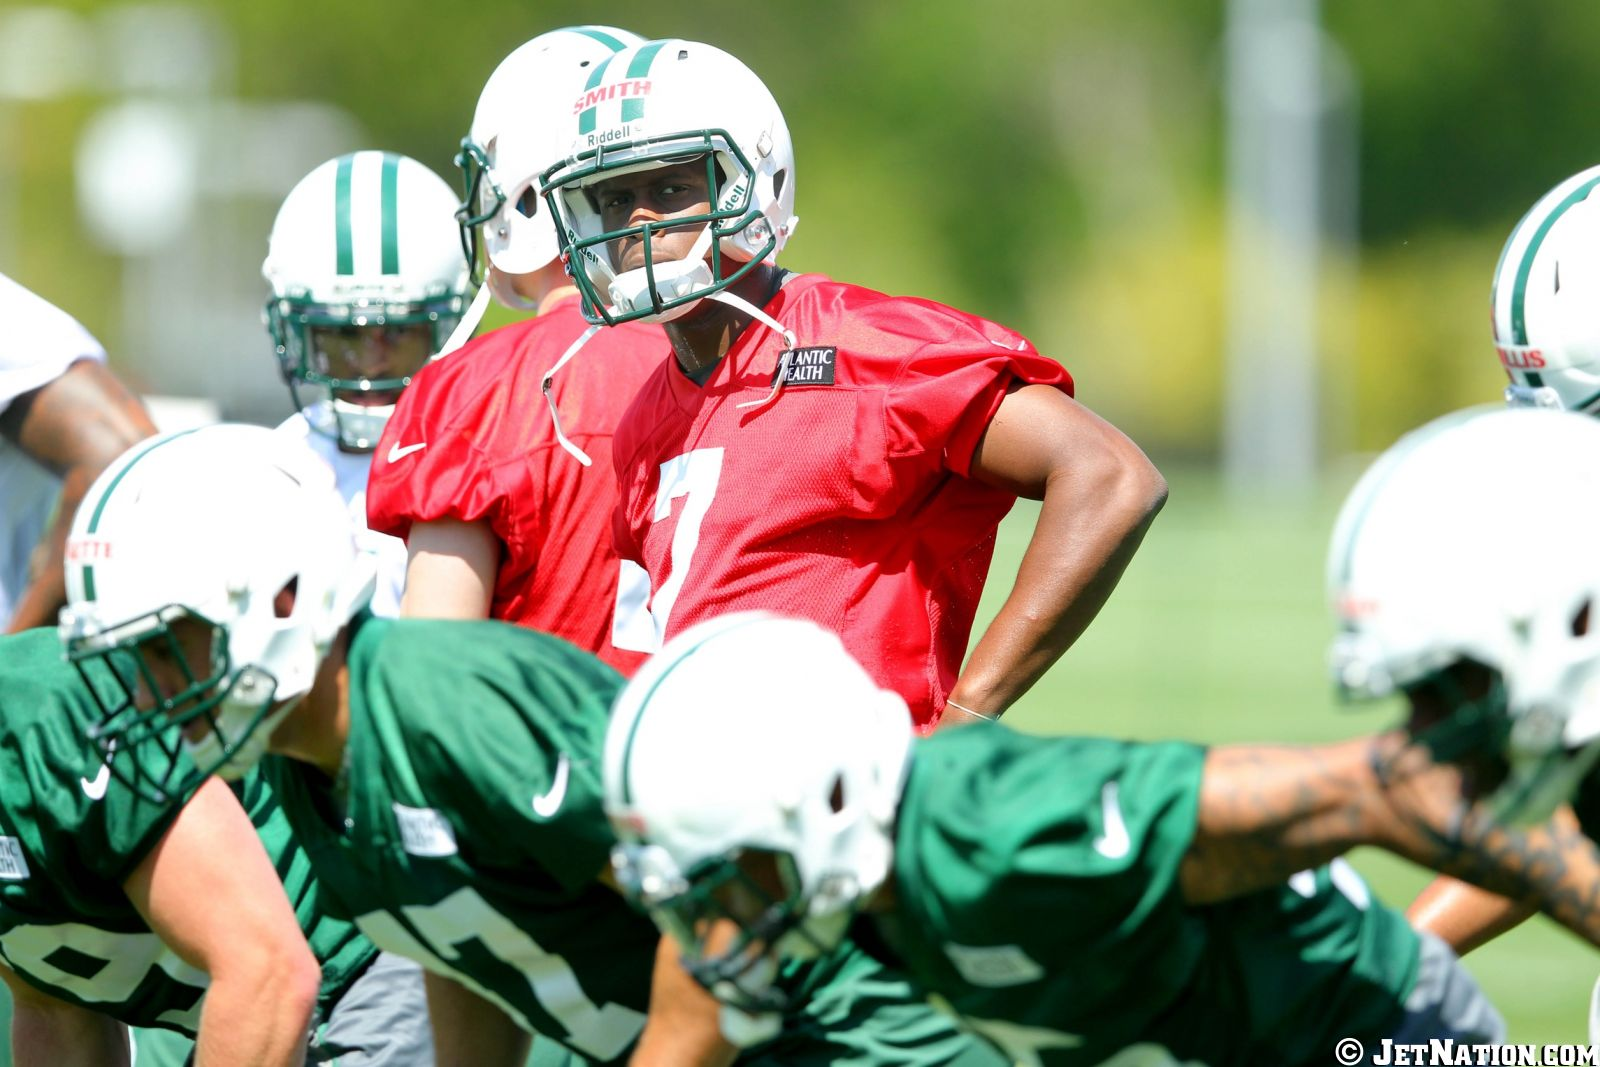 Geno Smith gets ready to run a play